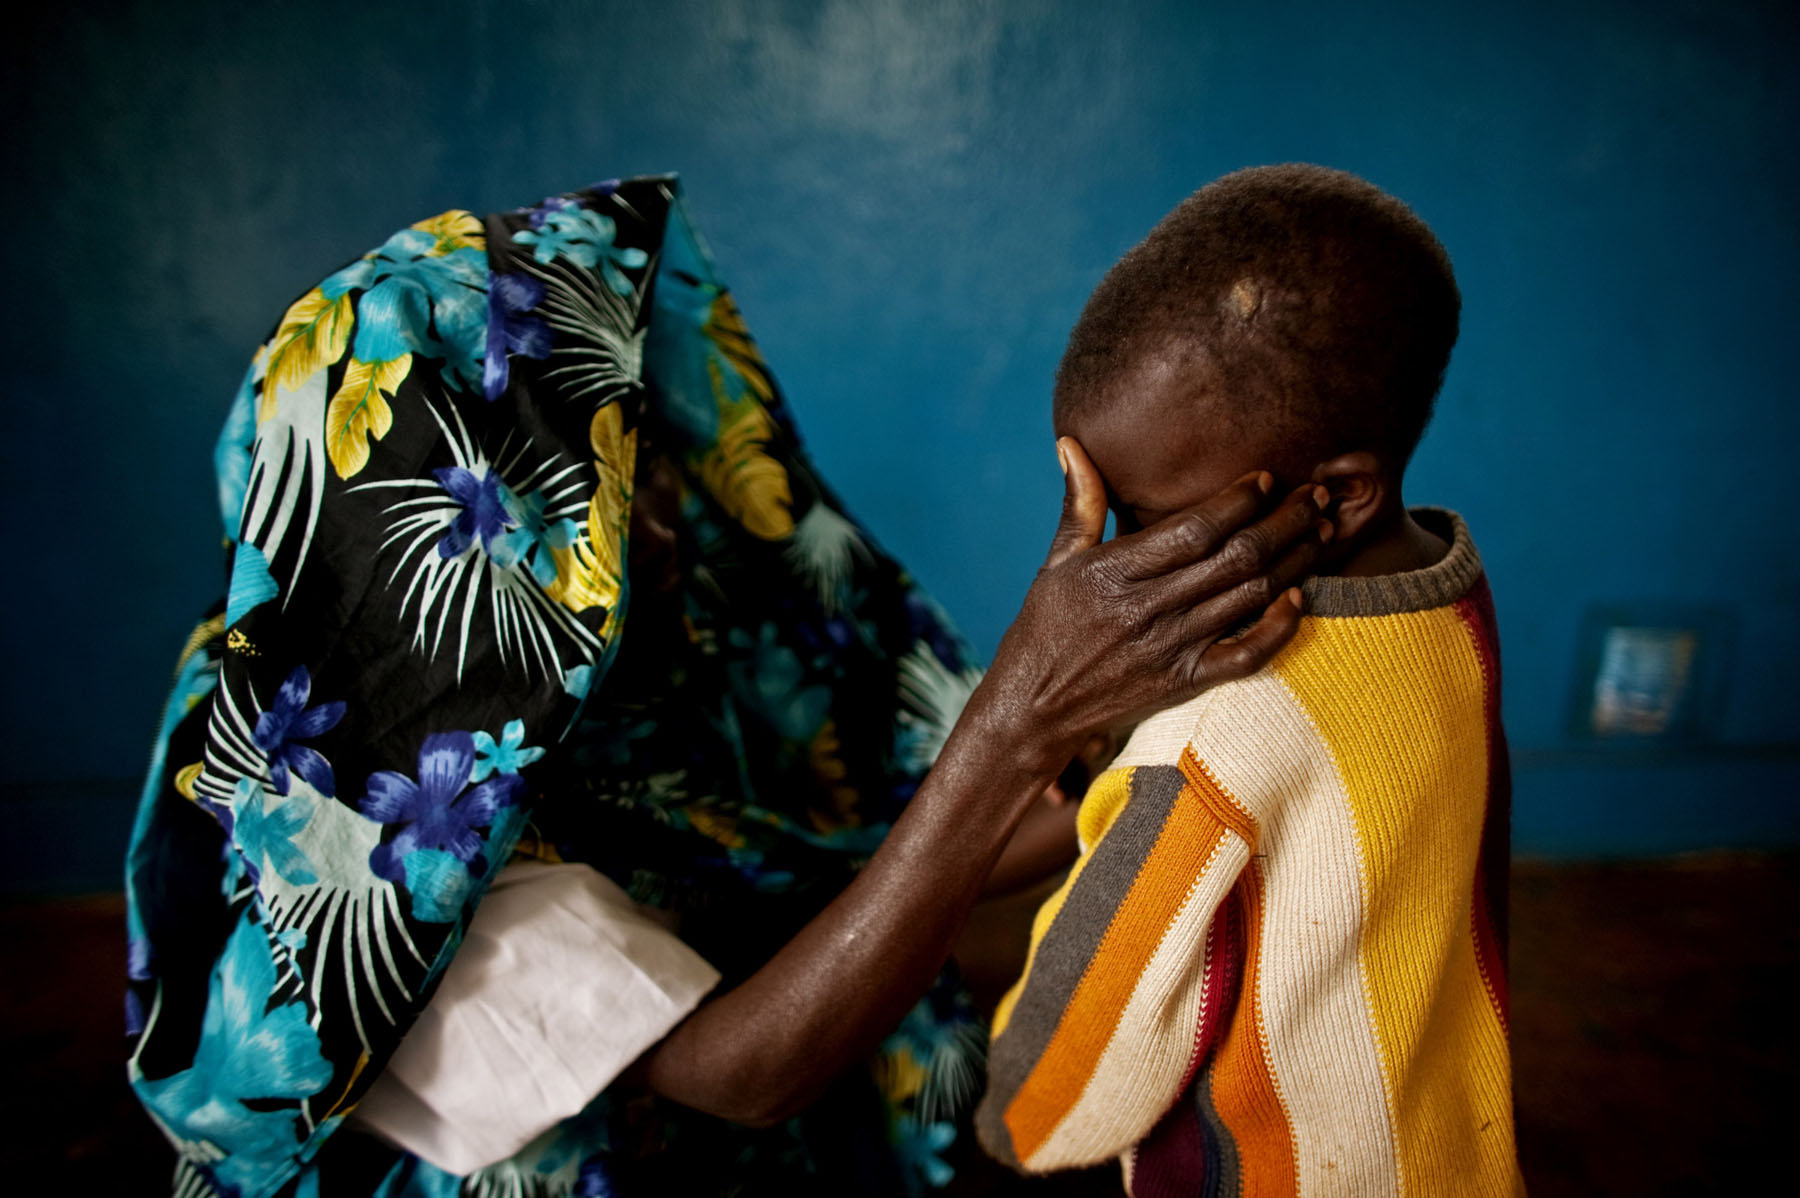 A mass rape victim and her son in the town of Fizi. Her son suffered a head wound (pictured here) when soldiers threw him to the ground before raping and beating his mother. After posing for a portrait on her own, this woman insisted that I photograph her son. She seemed more concerned with his suffering than with her own.